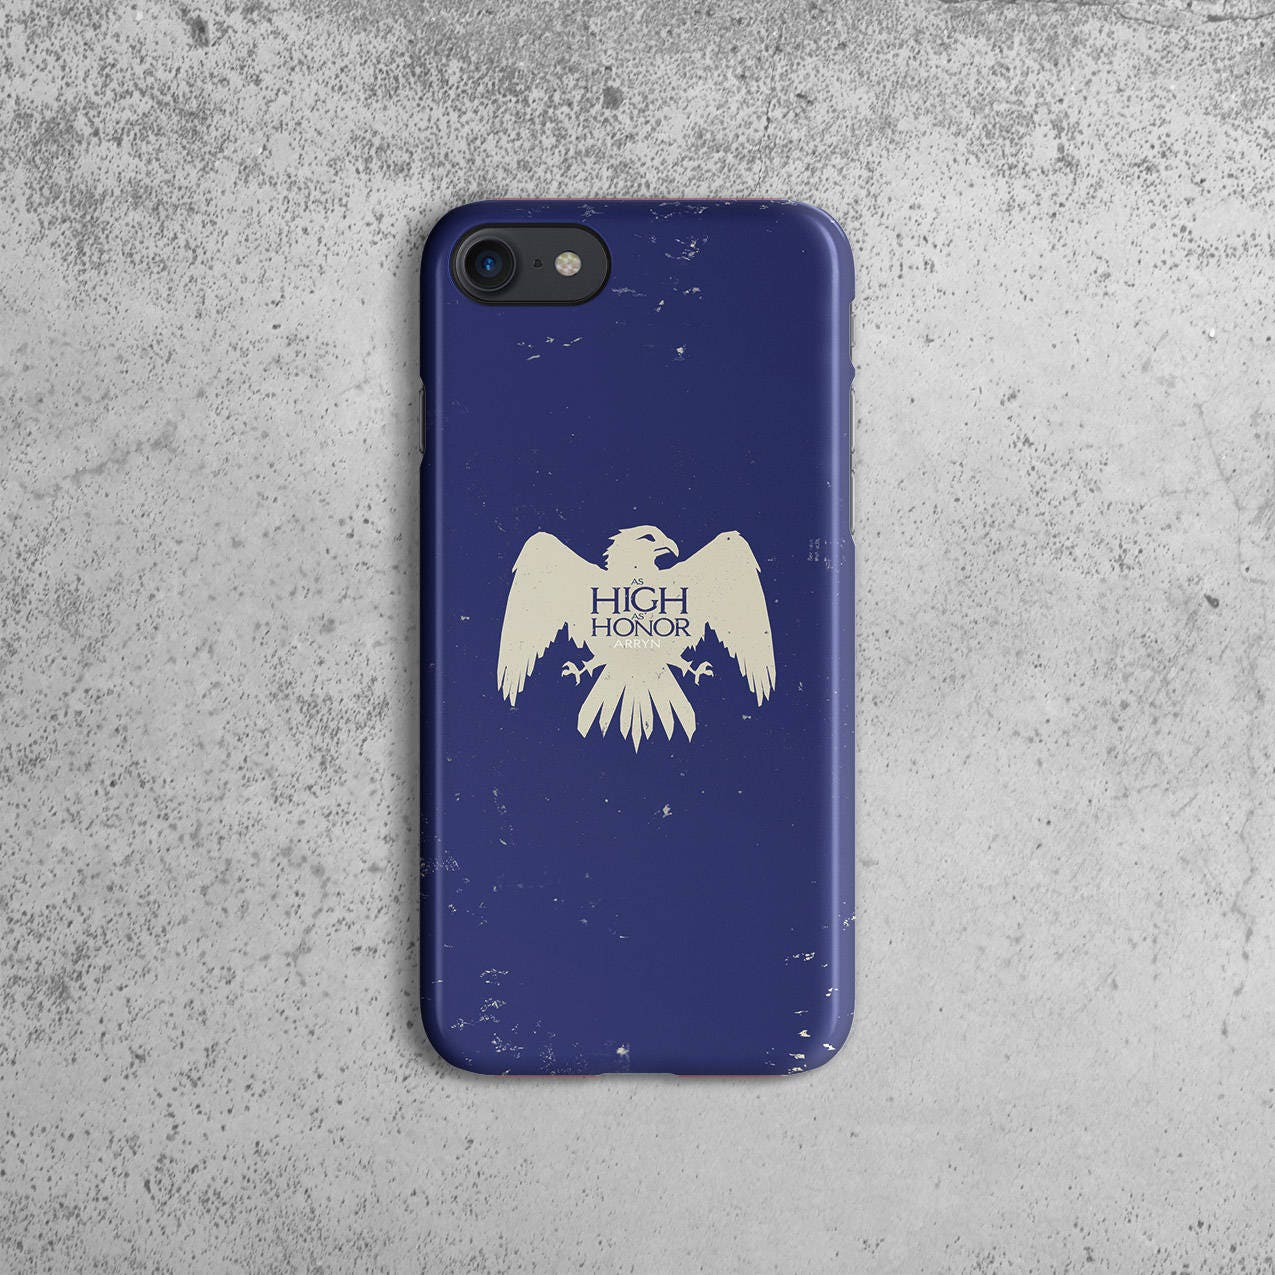 Electronics Cases Custom Hardcase Midnight Dots Iphone 4 5 5c 6 Plus 7 Case Game Of Thrones House Arryn As High Honor Durable Hard Plastic Protective For Apple